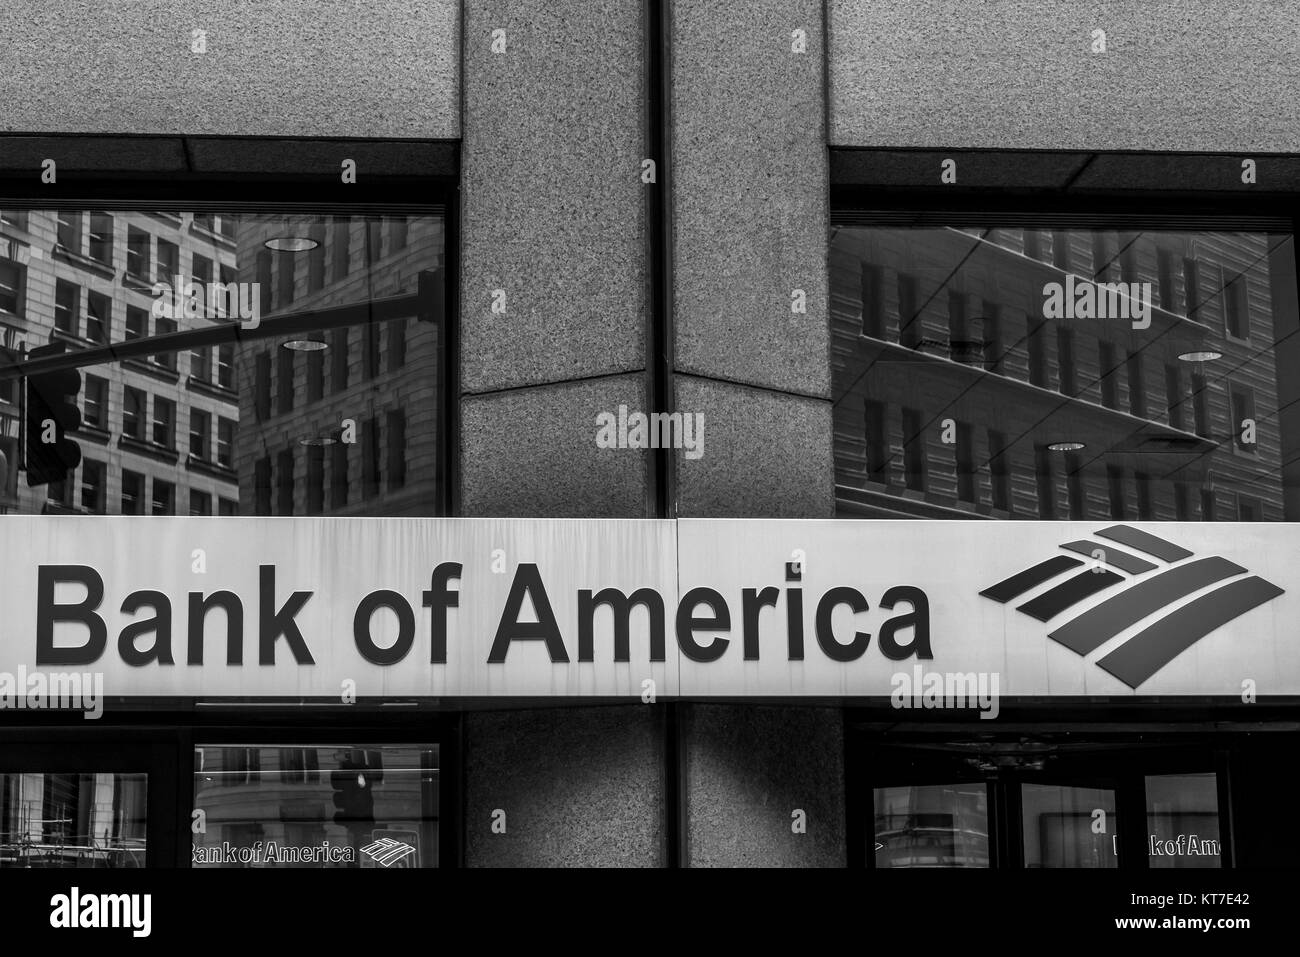 banking industry an american multinational banking and ♦multinational corporations purchase controlling interests in various national elements of developed industrial western nations ♦the multinational this corrupt economic manipulation/exploitation applies over multiple sectors, and even in the sub-sector of an industry like steel.